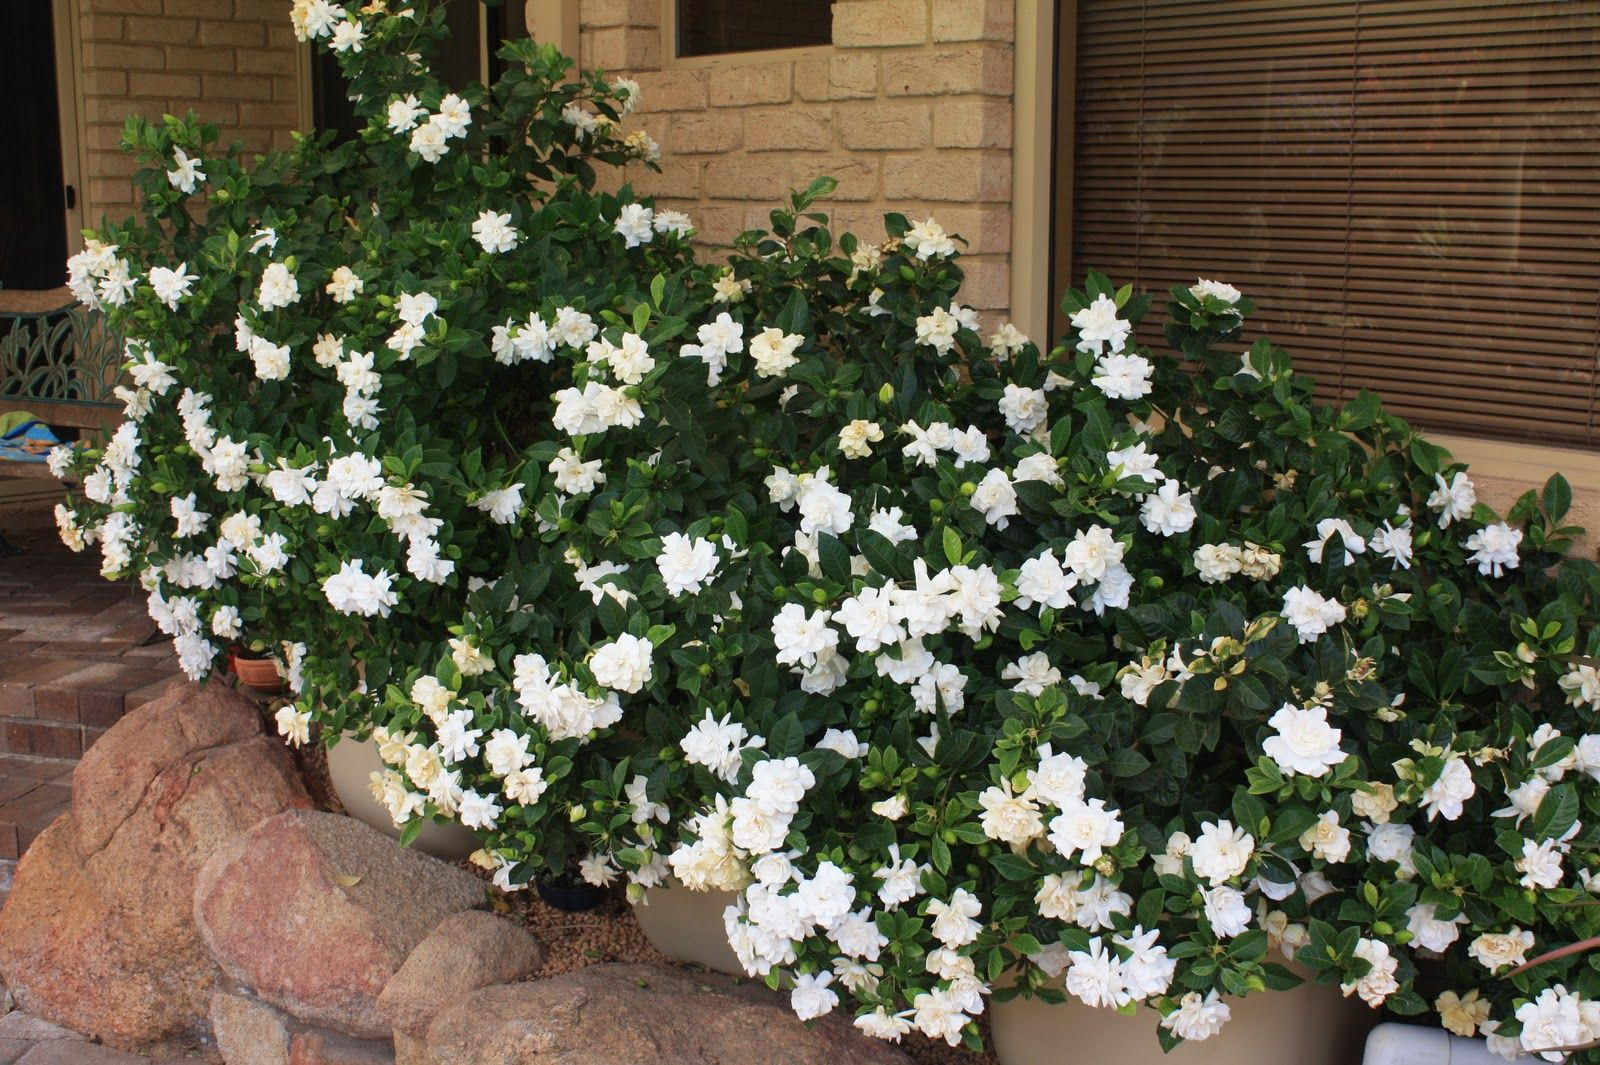 10 Heavenly Smelling Plants For Your Yard Plants That Smell Delicious That Are Perfect For Your Yard And Garden Plants Gardenia Plant Flowering Shrubs